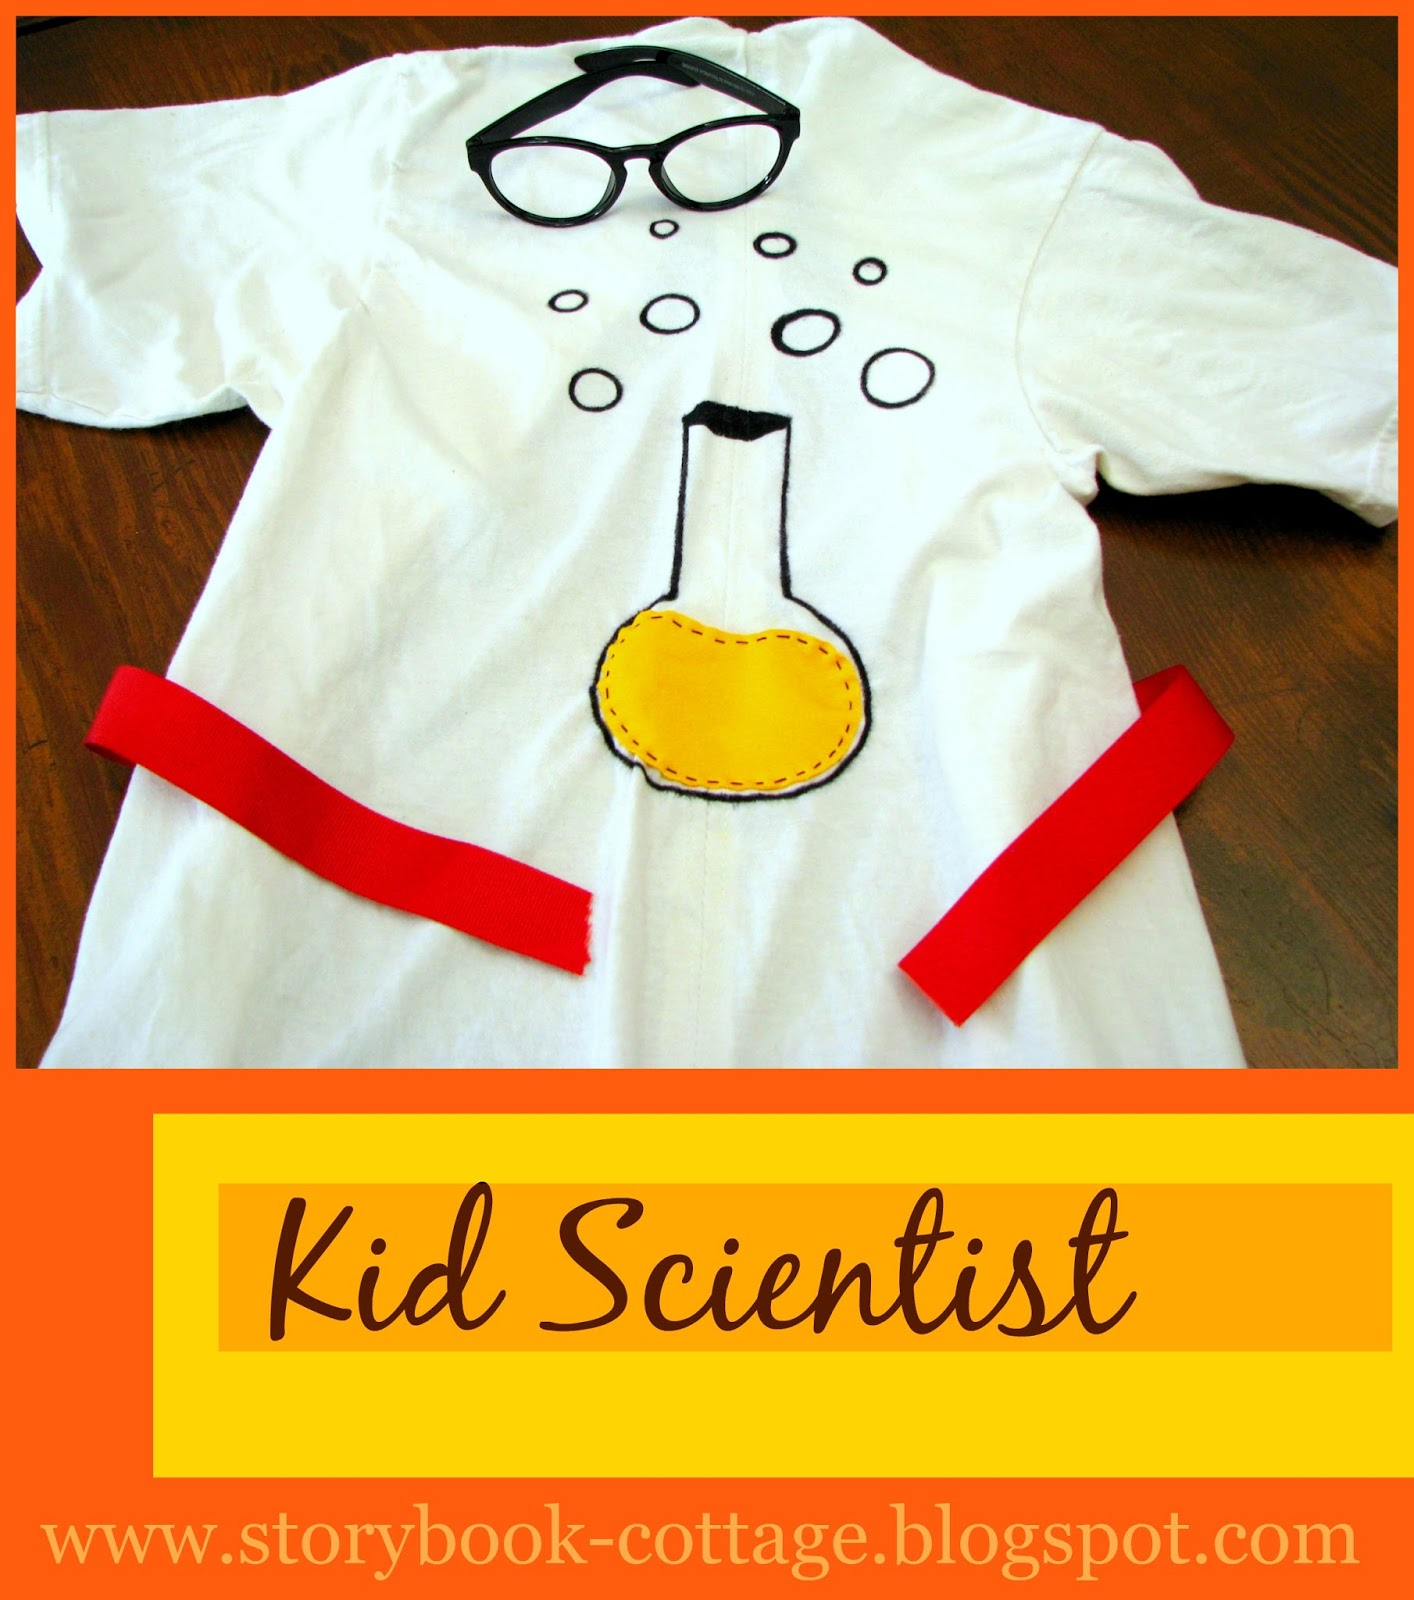 Let S Play Dress Up: Storybook-cottage: Let's Play Dress Up...Kid Scientist